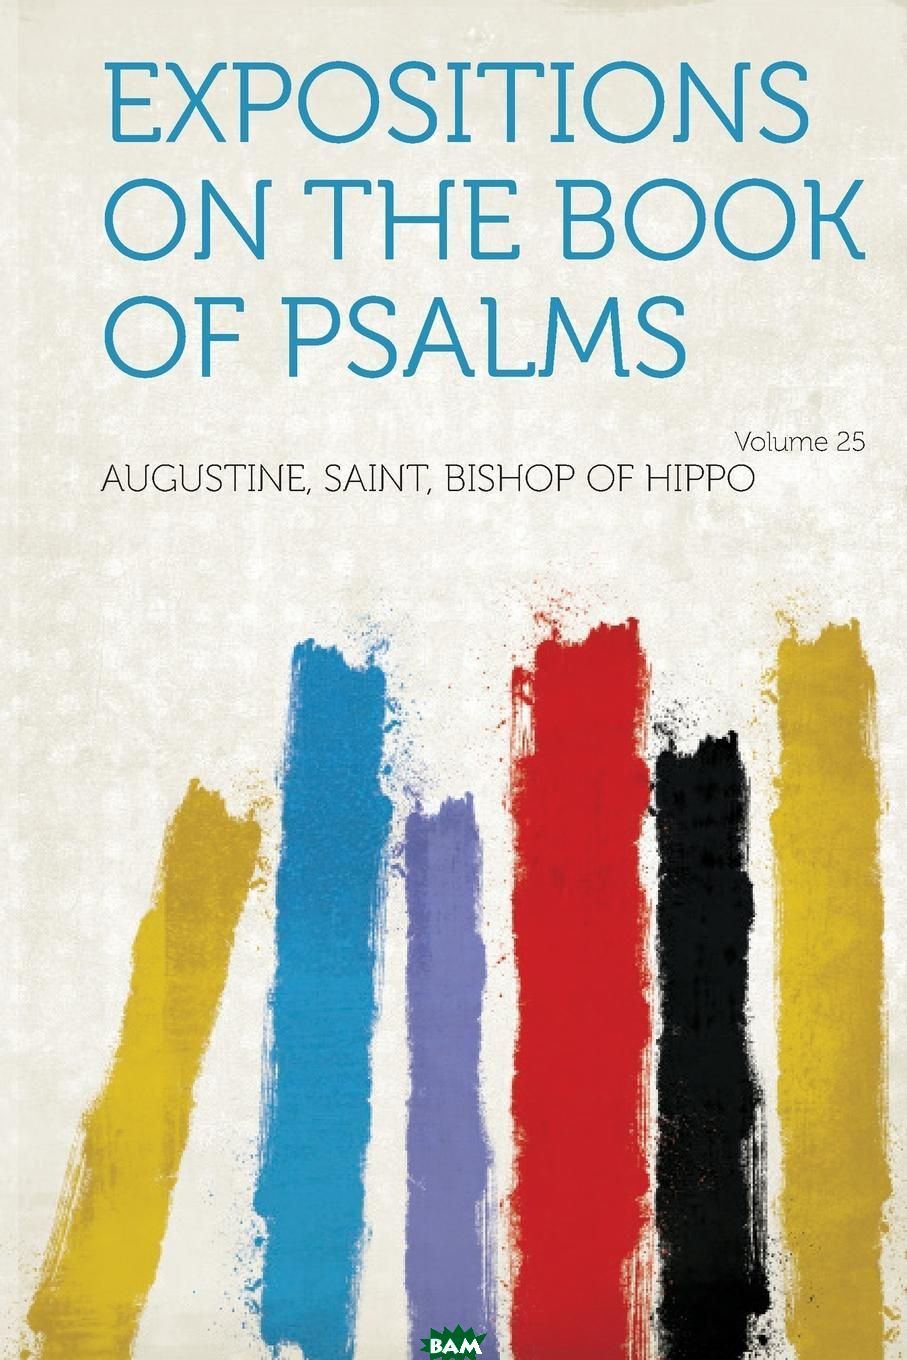 Expositions on the Book of Psalms Volume 25